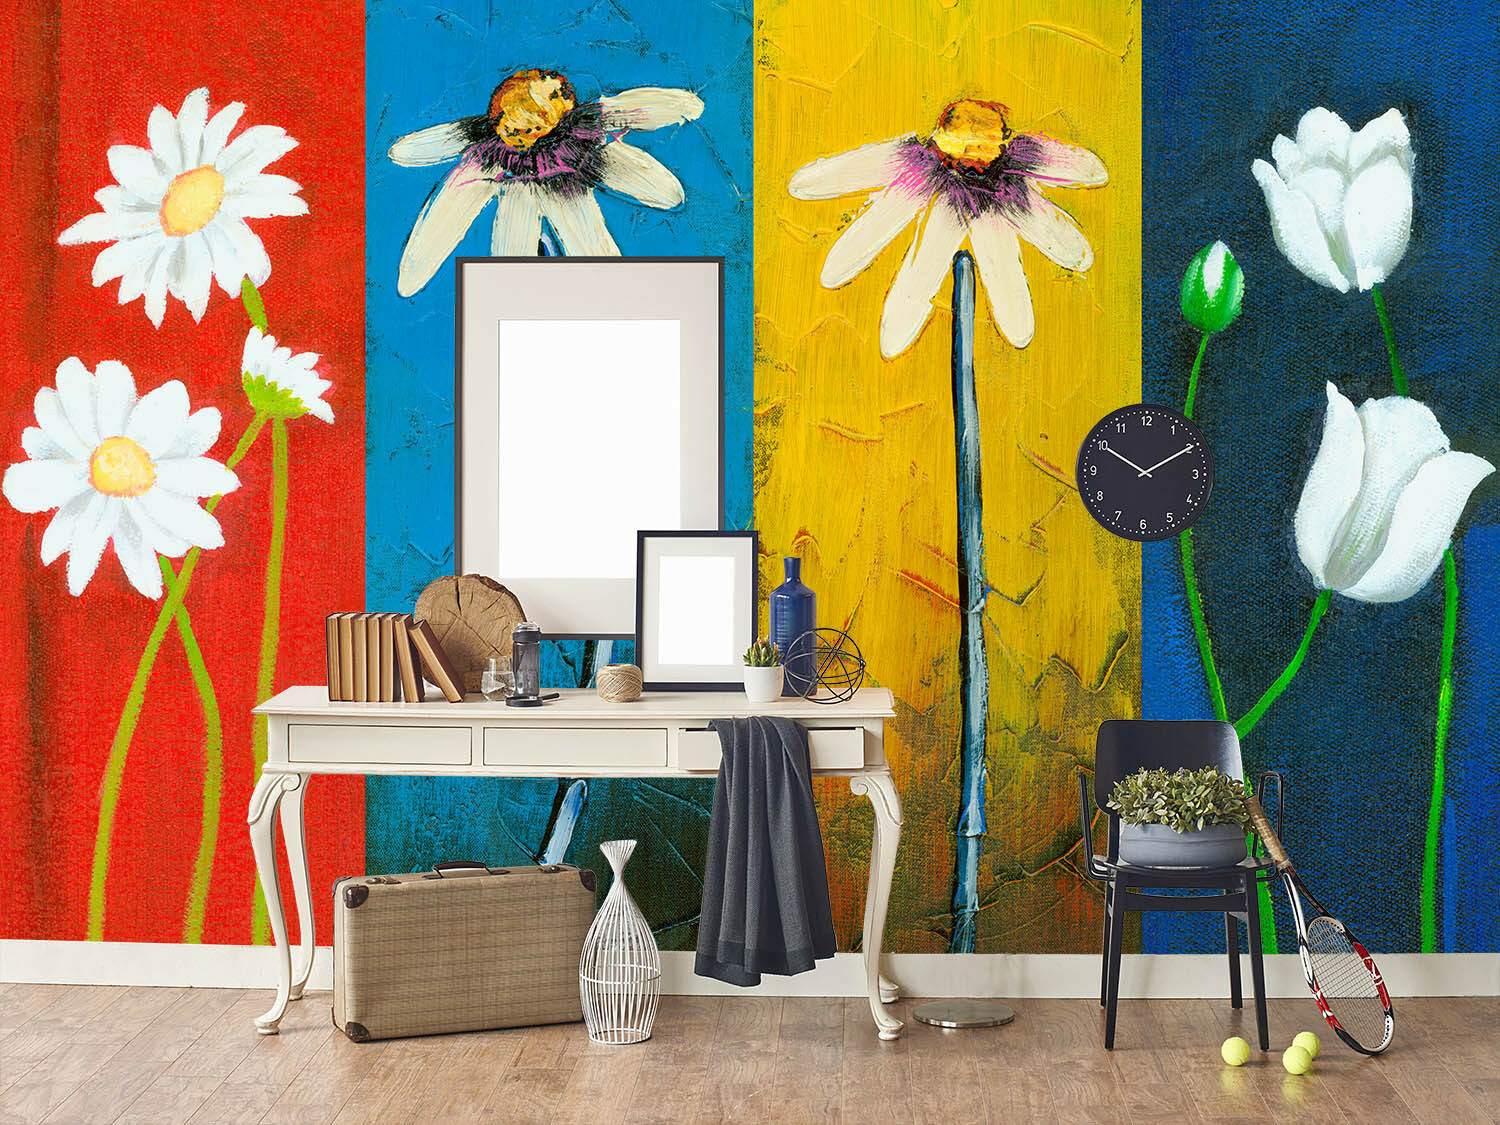 3D Farbeed Flowers 8 Wall Paper Murals Wall Print Wall Wallpaper Mural AU Kyra